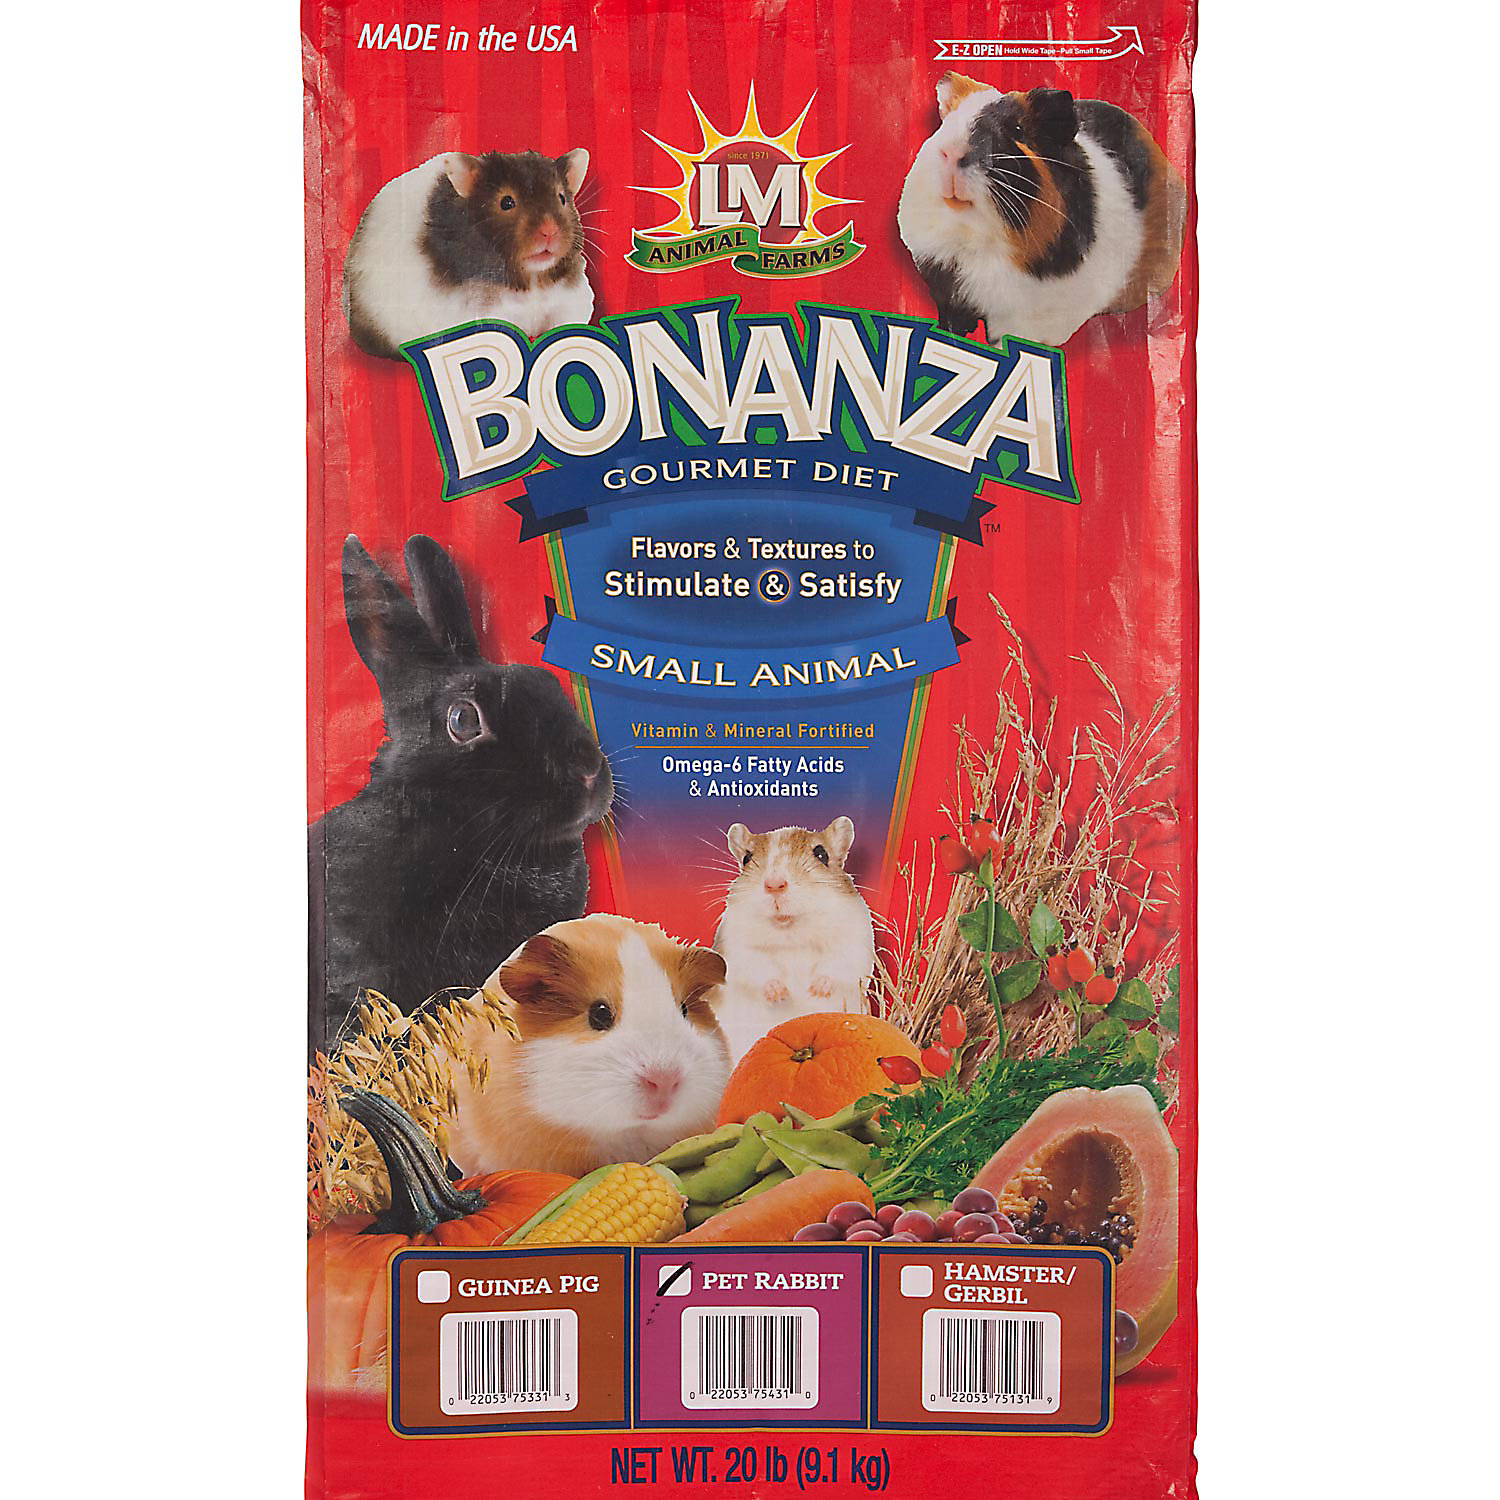 LM Animal Farms Bonanza Gourmet Diet Rabbit Food